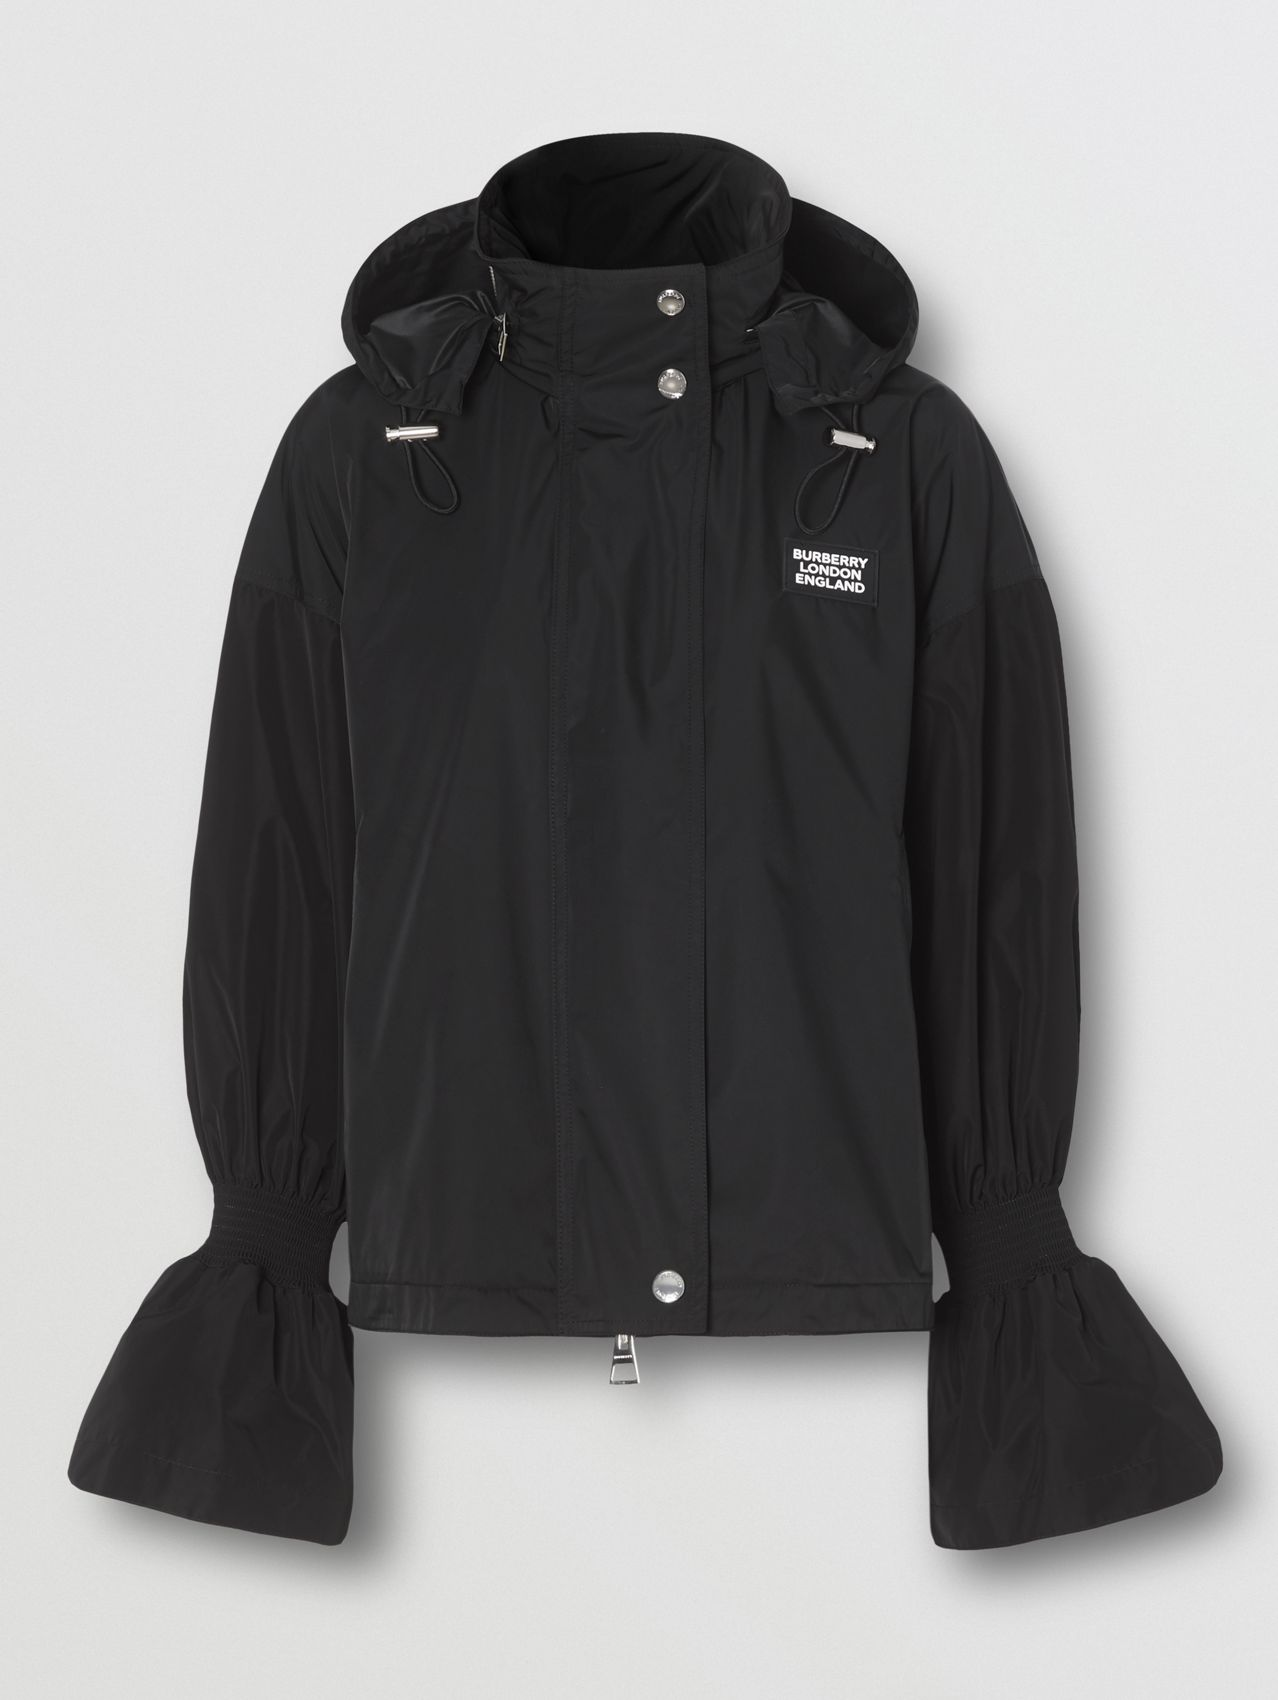 Packaway Hood Bio-based Nylon Jacket (Black)